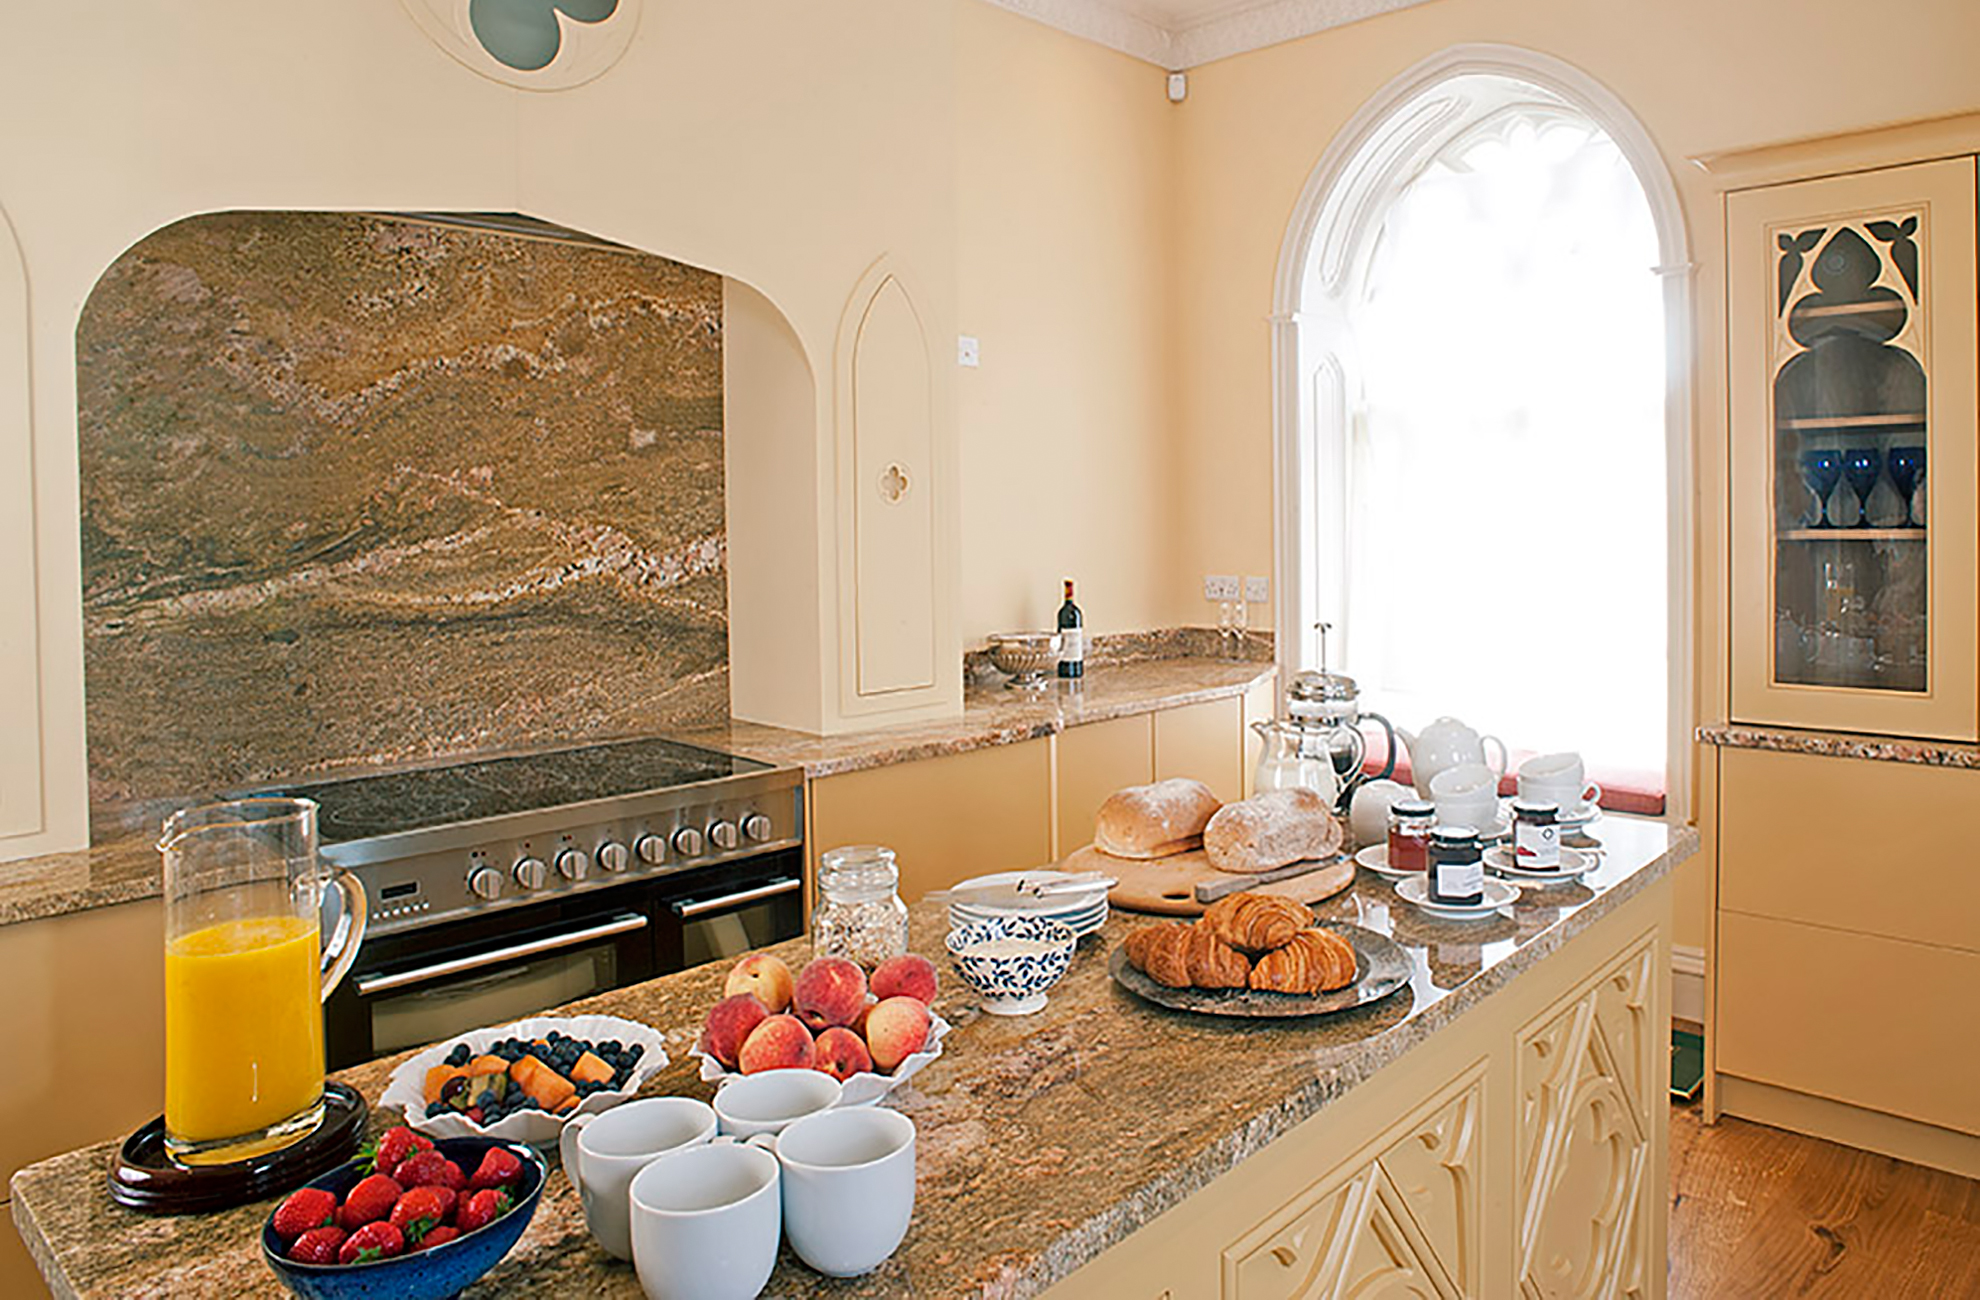 The Kitchen in the North Wing at Combermere Abbey is set for a delicious breakfast